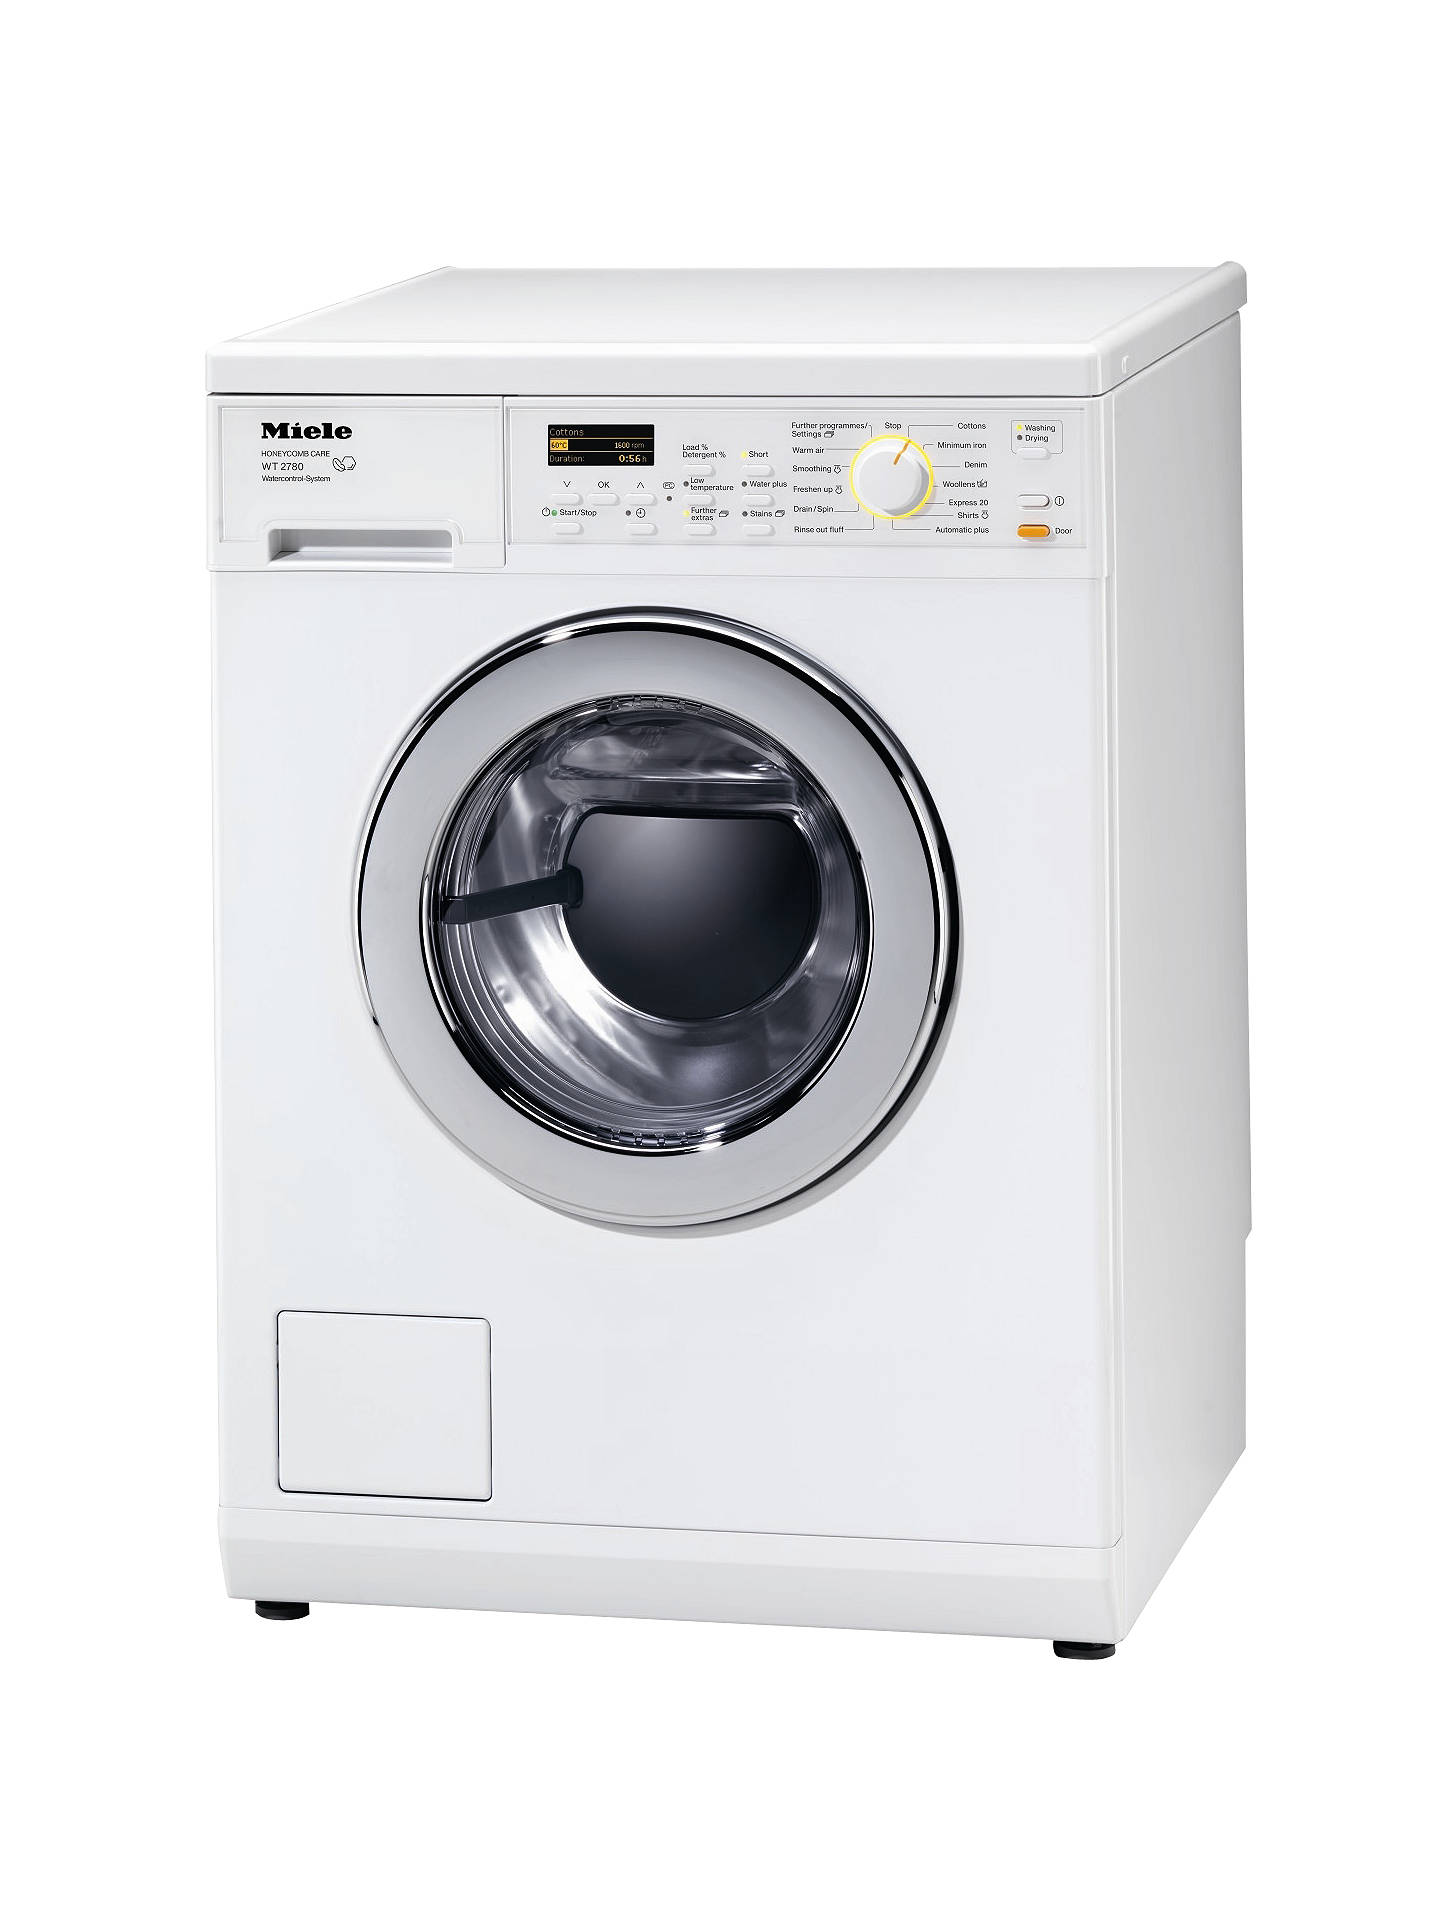 Miele WT2780 Washer Dryer, 5kg Wash/3kg Dry Load, A+ Energy Rating